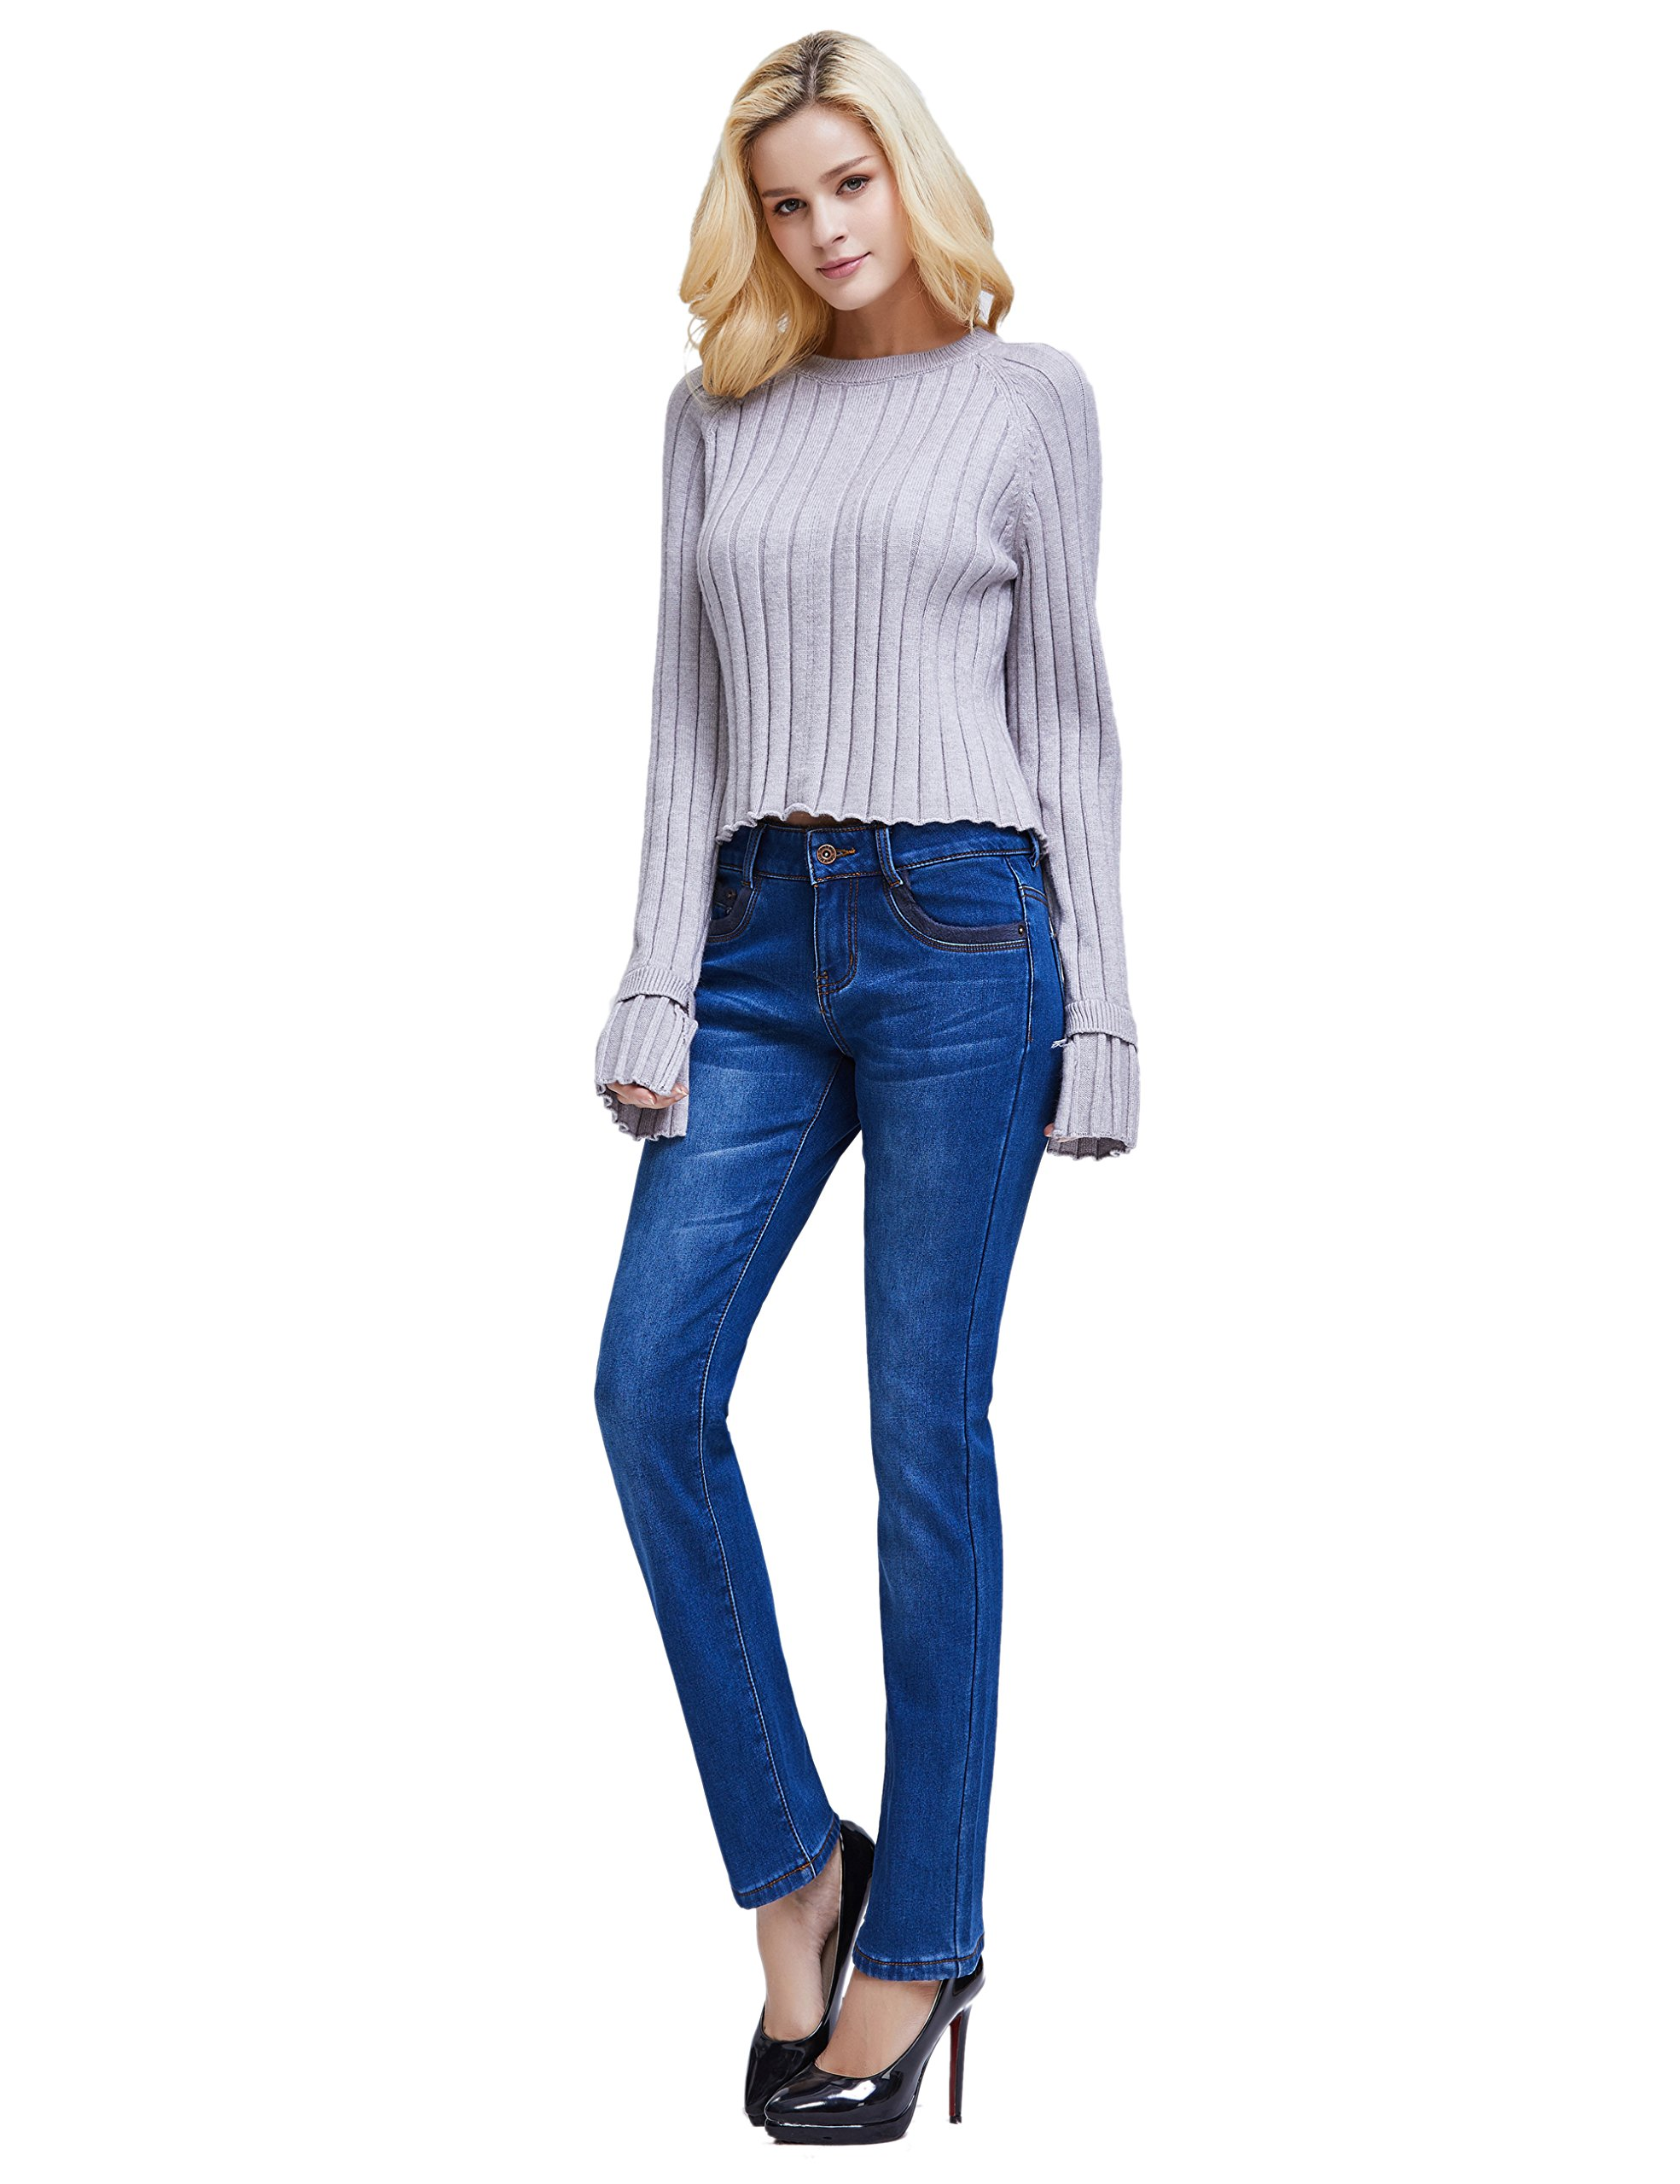 Camii Mia Women's Winter Slim Fit Thermal Jeans Pants (W28 x L30, Blue (New Size)) by Camii Mia (Image #6)